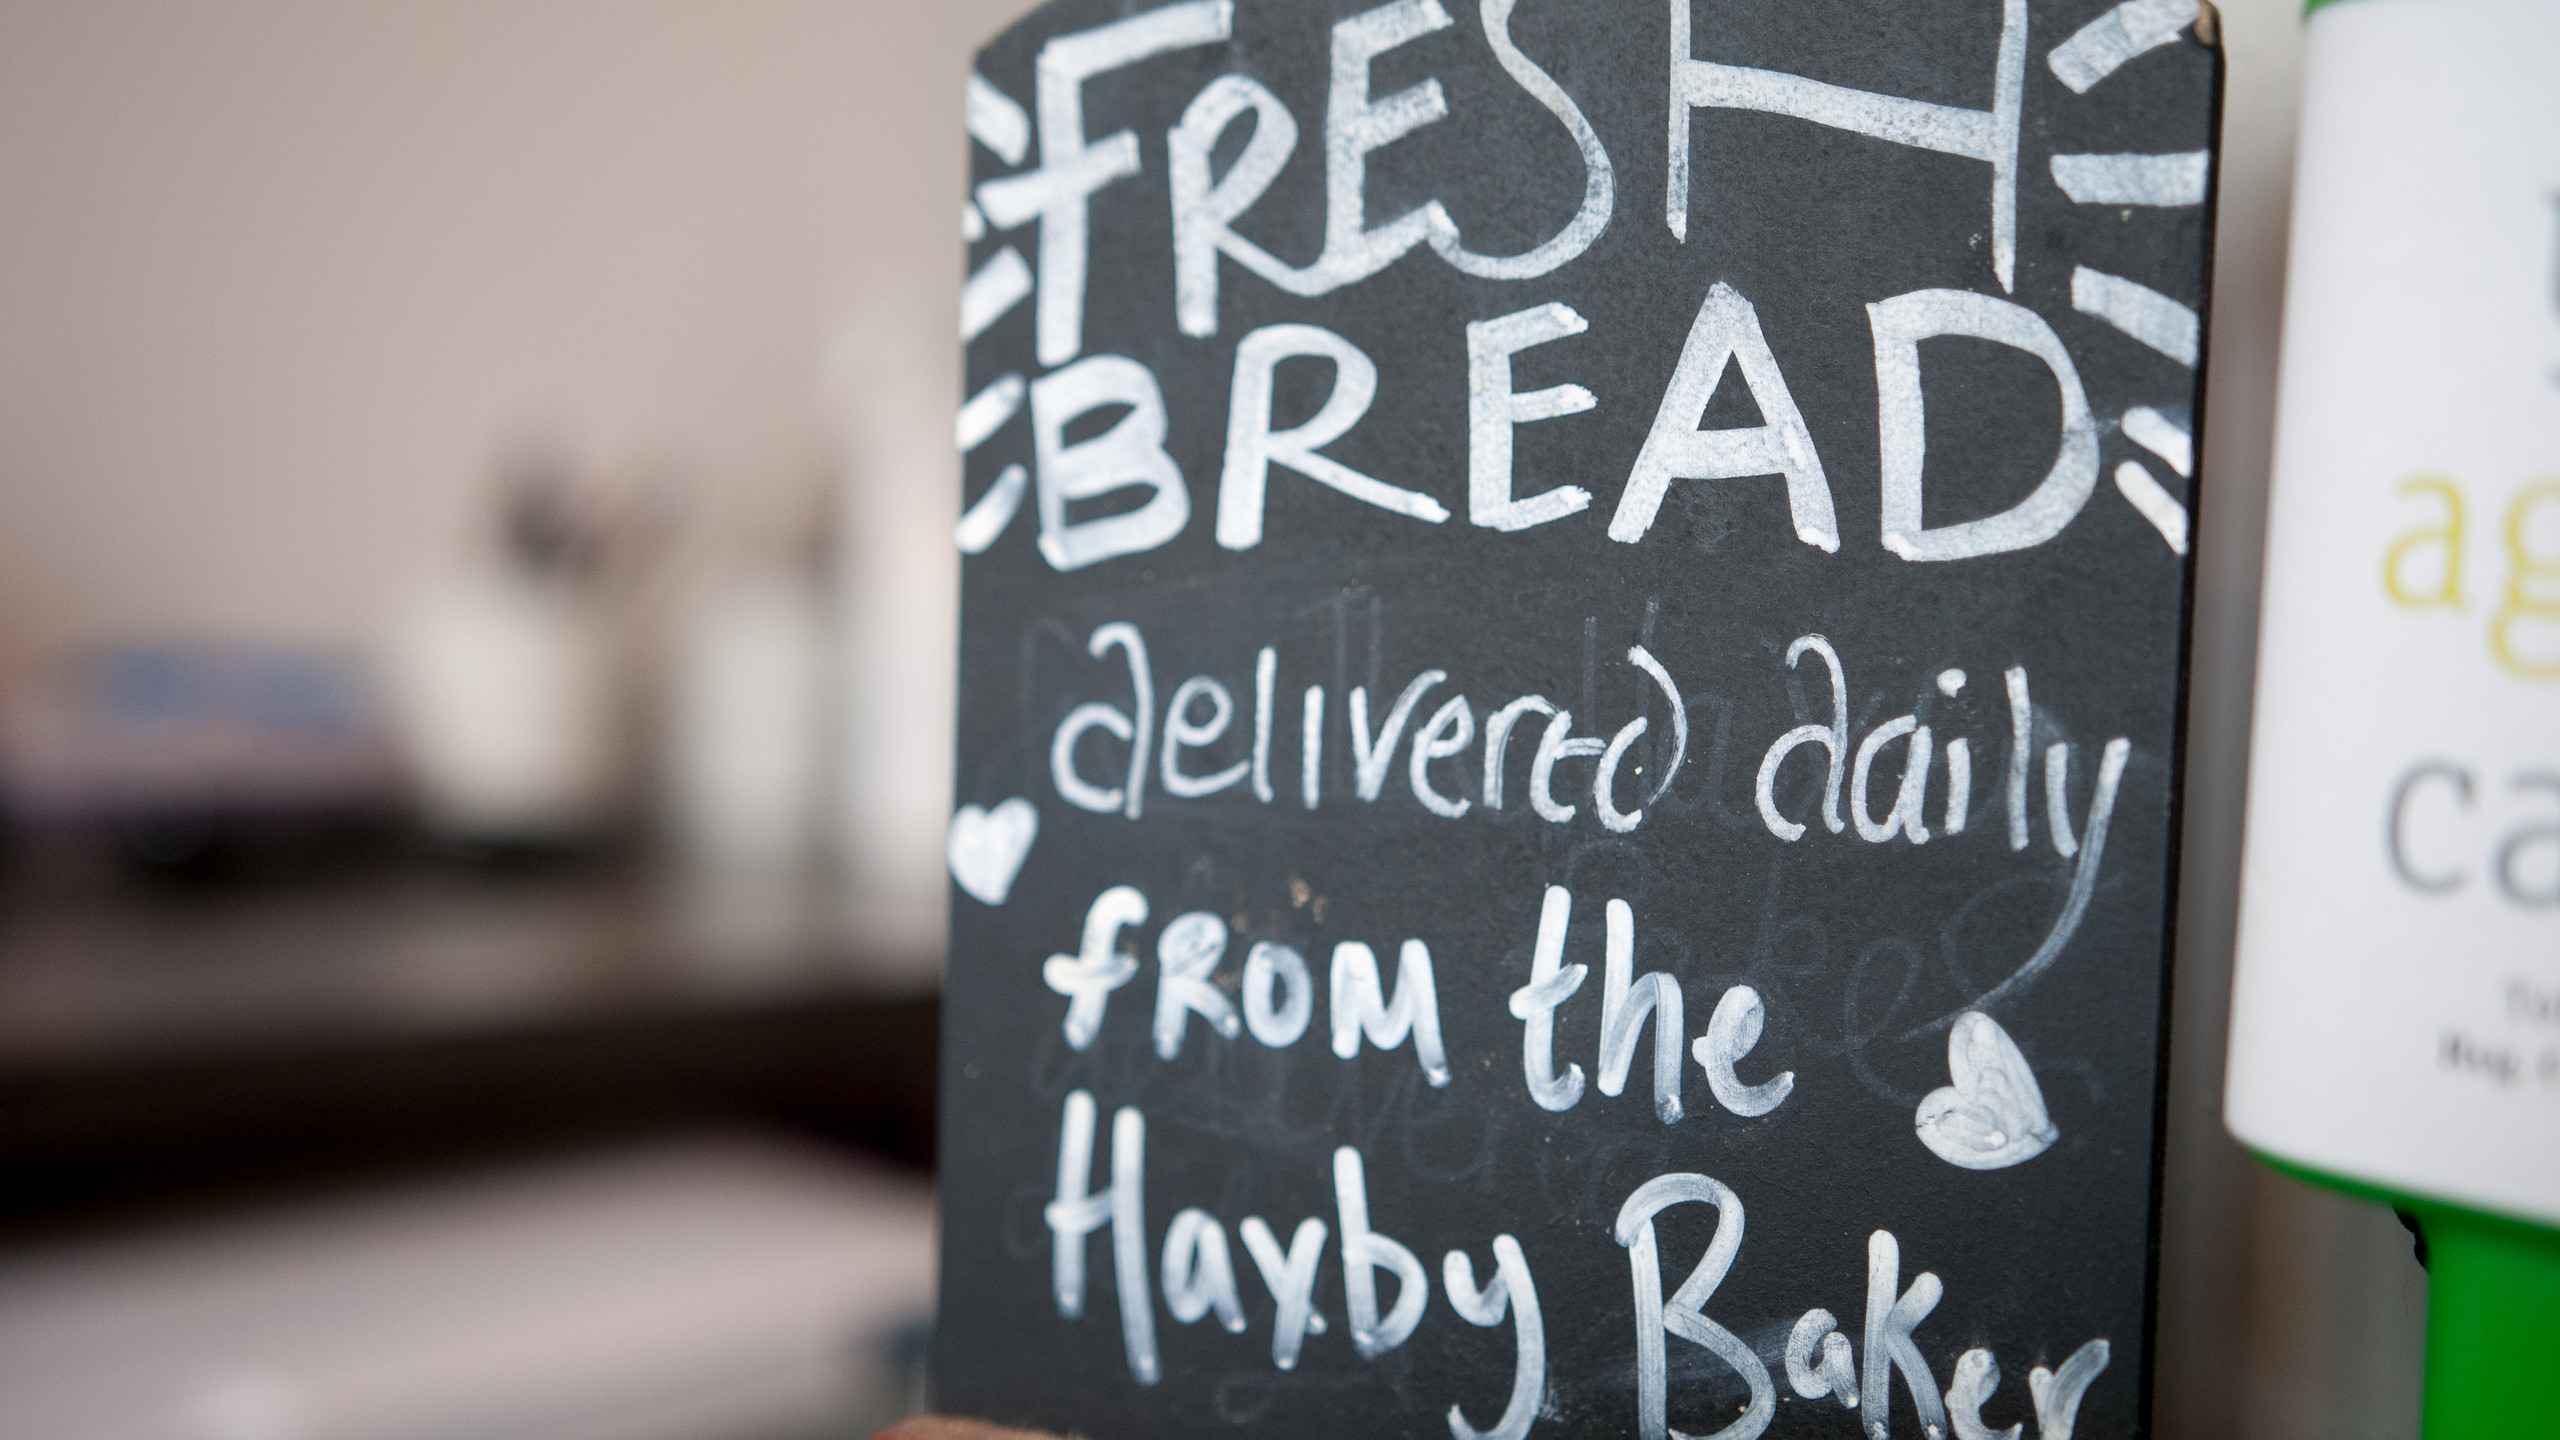 Fresh bread from the Haxby Baker